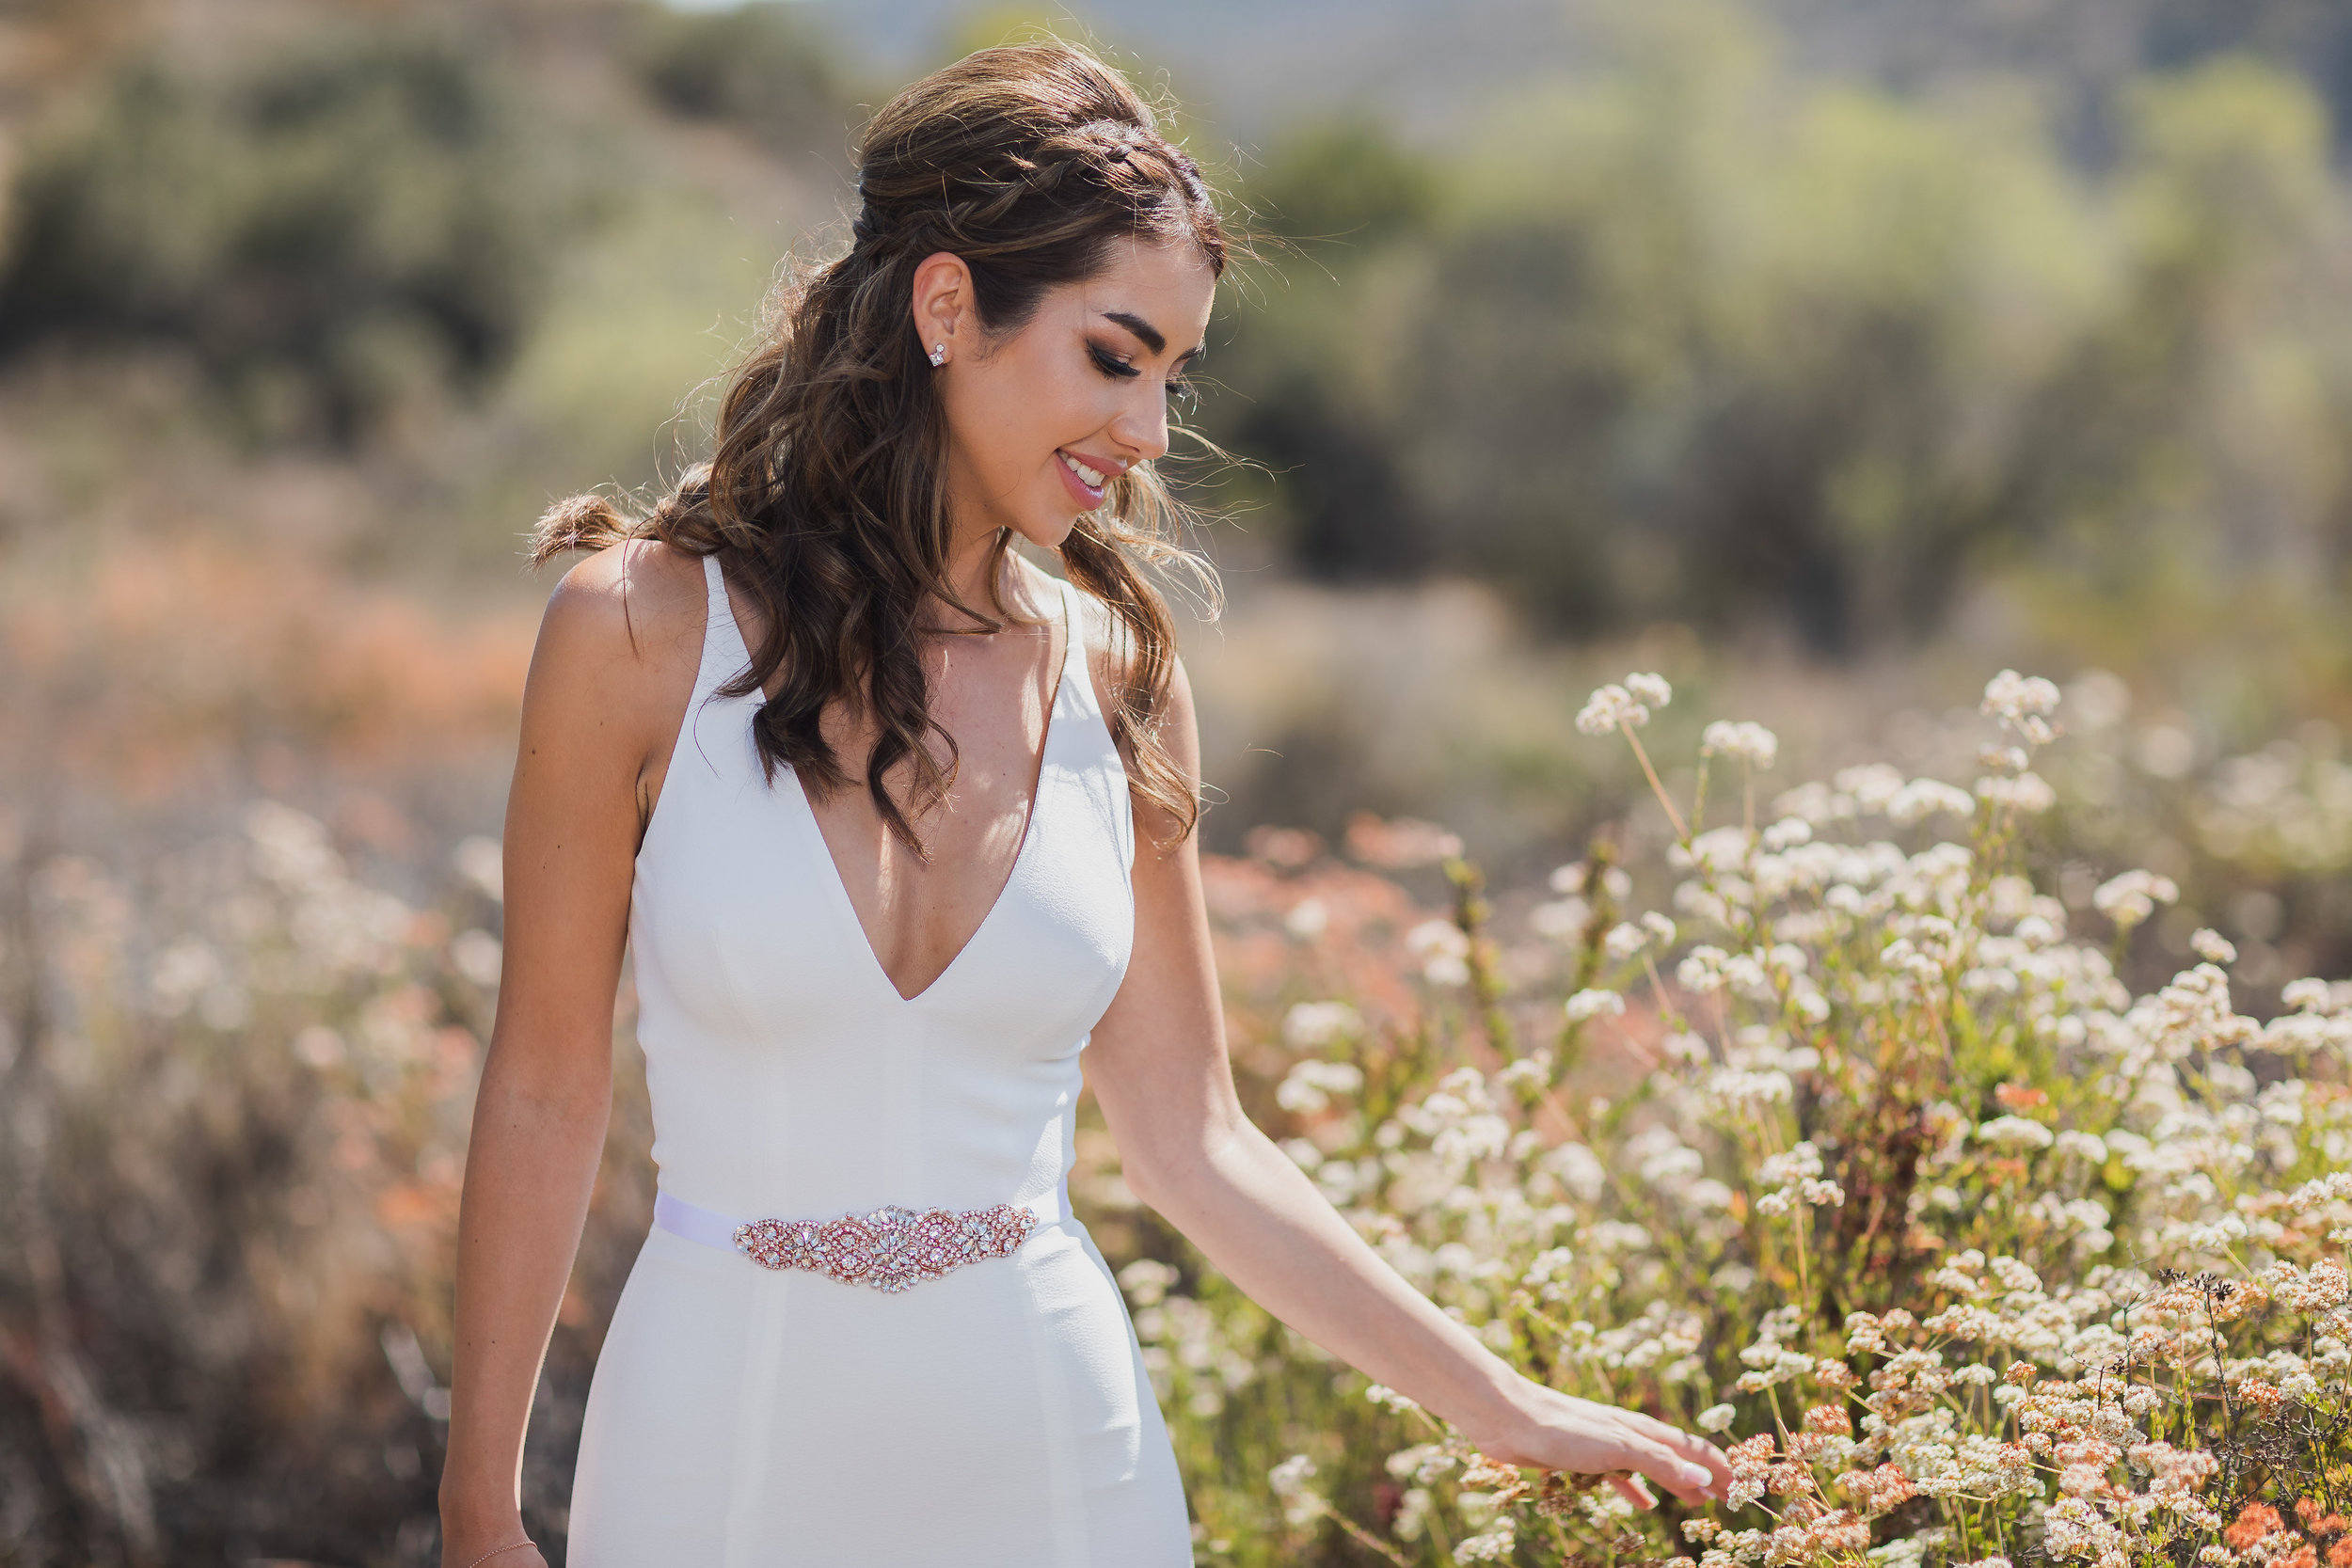 Photo of Bride walking among the desert flowers.jpg